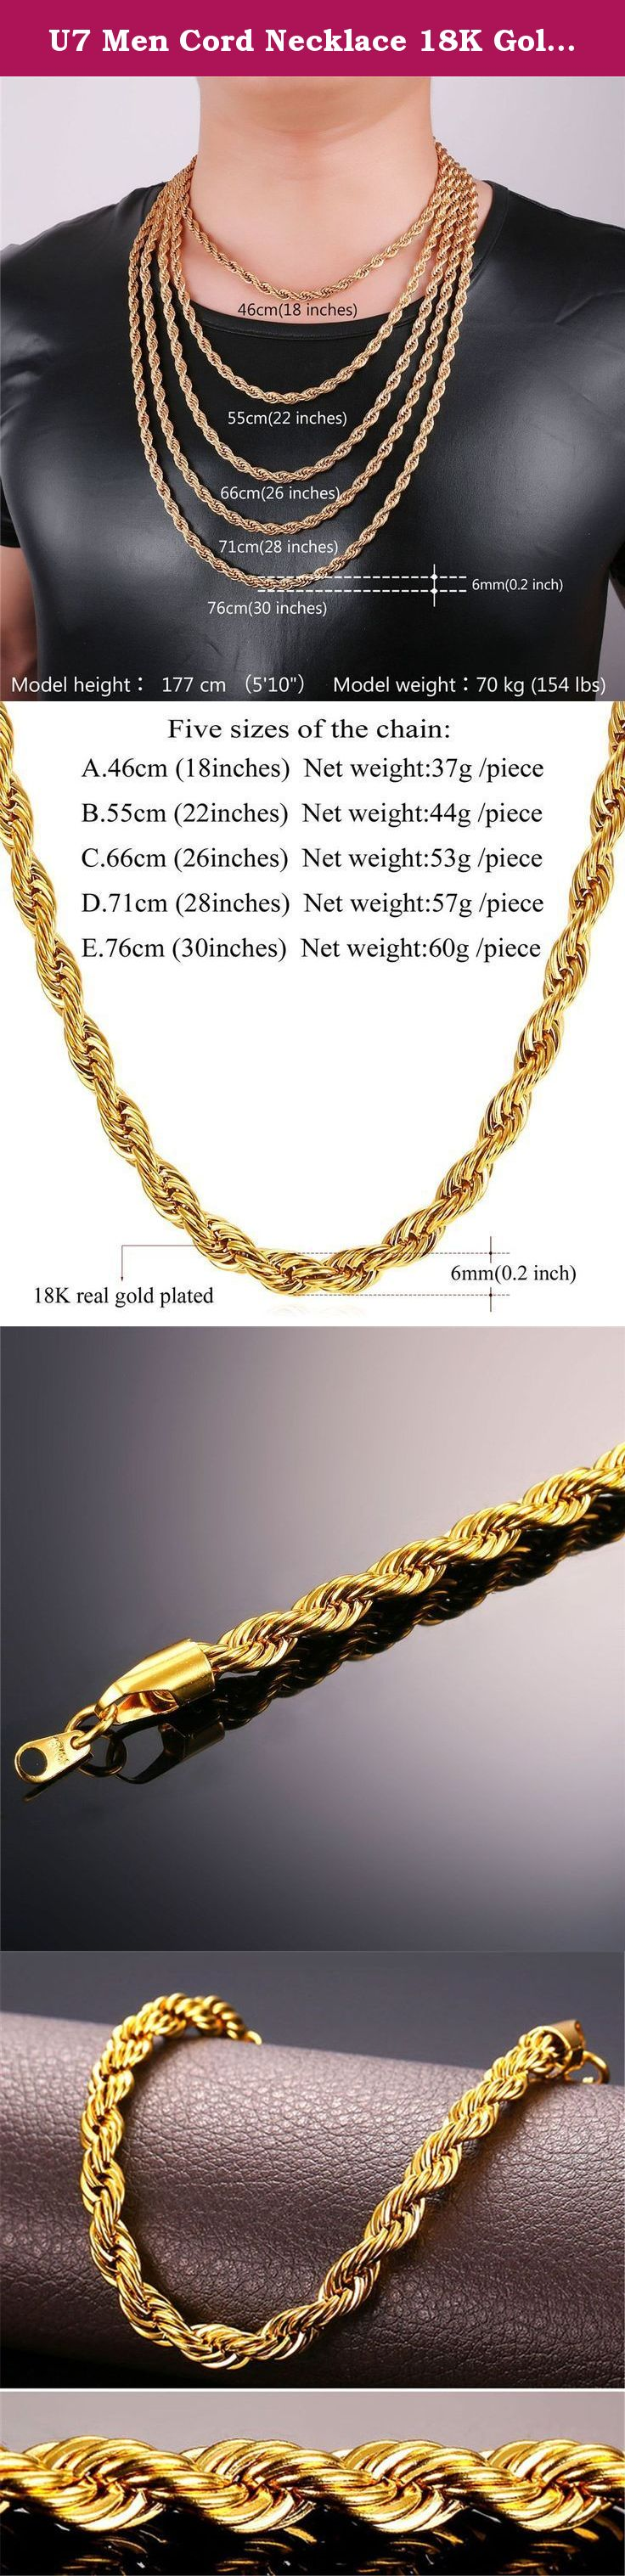 053de0fd72712 U7 Men Cord Necklace 18K Gold Plated 6mm Rope Chain,22